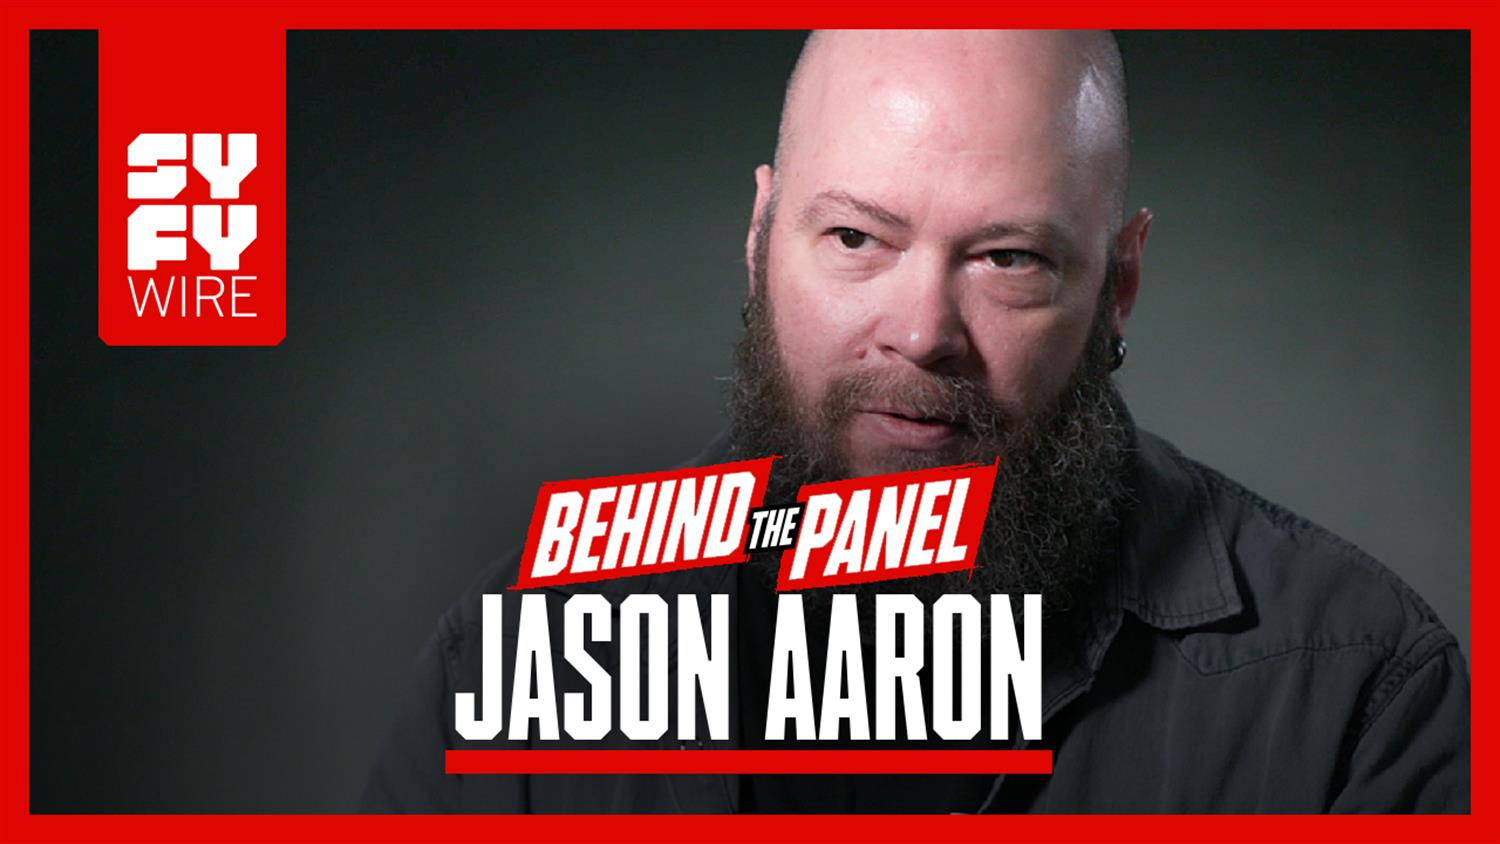 Shaping the Avengers and Star Wars: Jason Aaron Speaks (Behind the Panel)